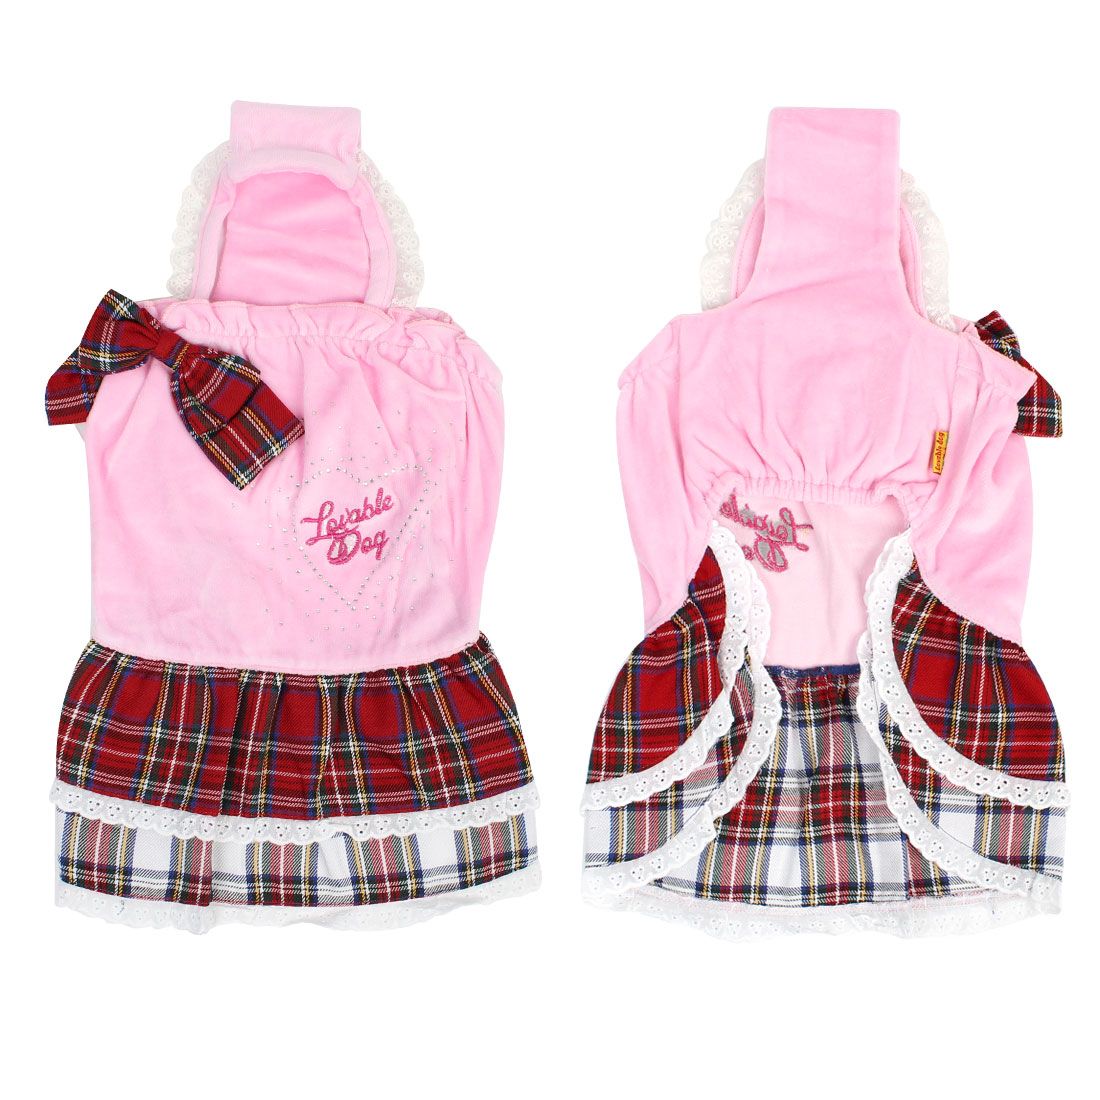 Pink Pet Dog Layered Tank Top Dress Apparel Clothing Skirts L